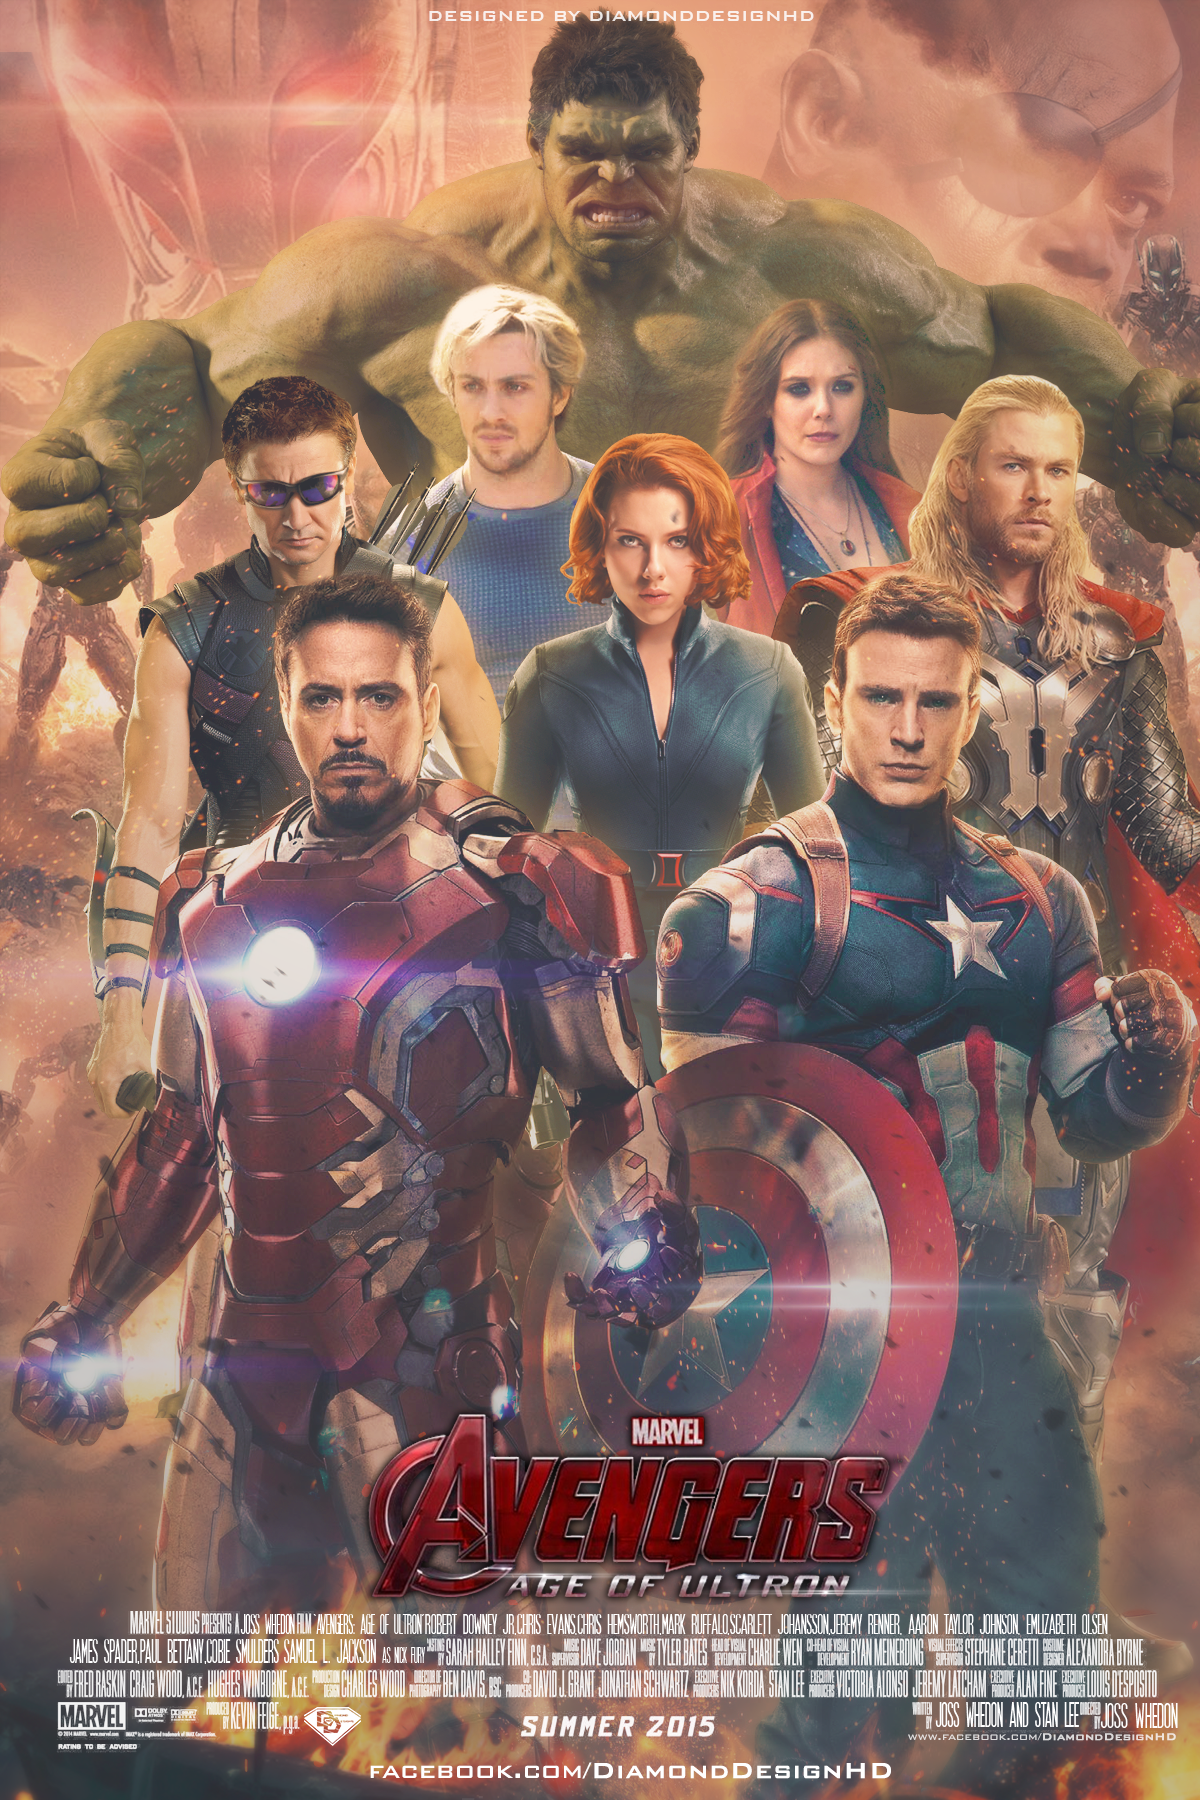 Most Inspiring Wallpaper Marvel Avengers Age Ultron - Avengers-Age-of-Ultron-FAN-MADE-Poster-ultron-37350484-1200-1800  Trends_38549.png